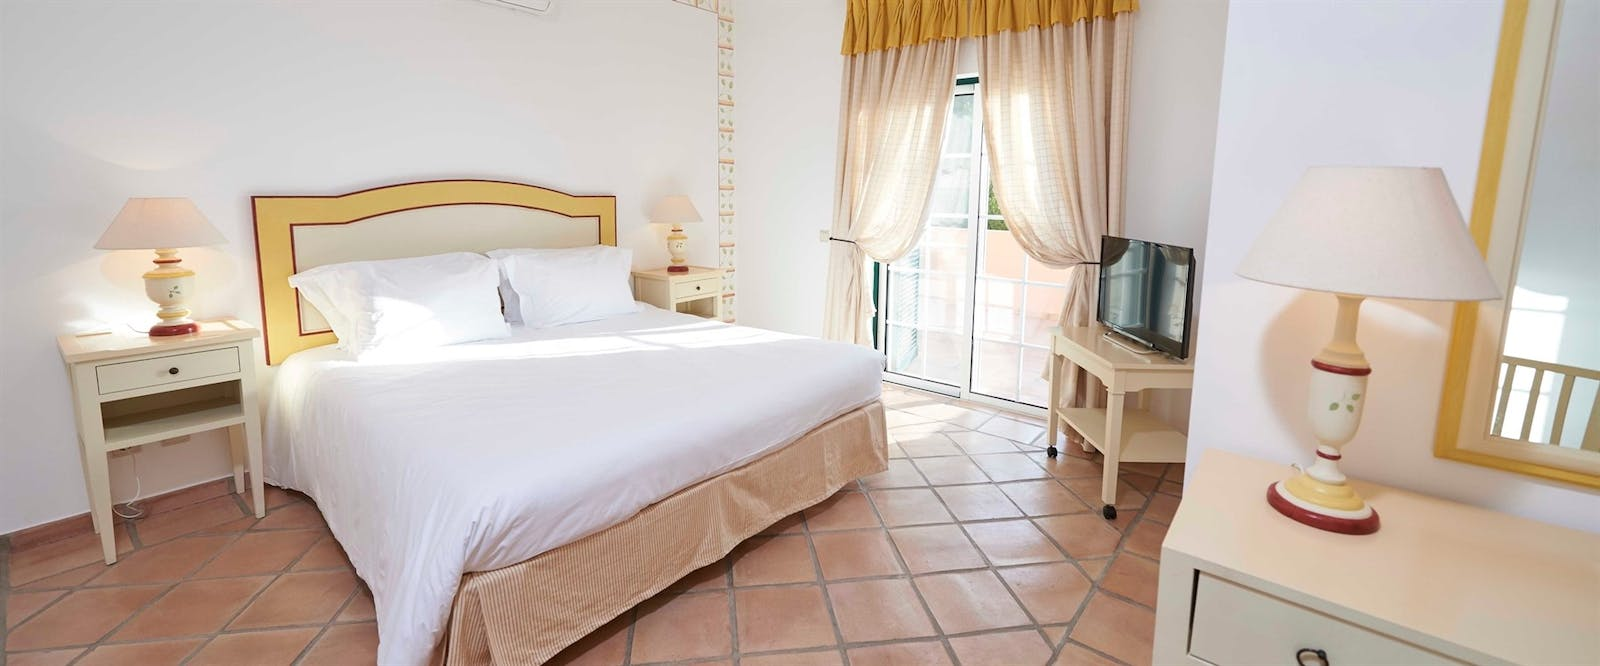 Townhouse Bedroom at Martinhal Quinta Family Resort, Algarve